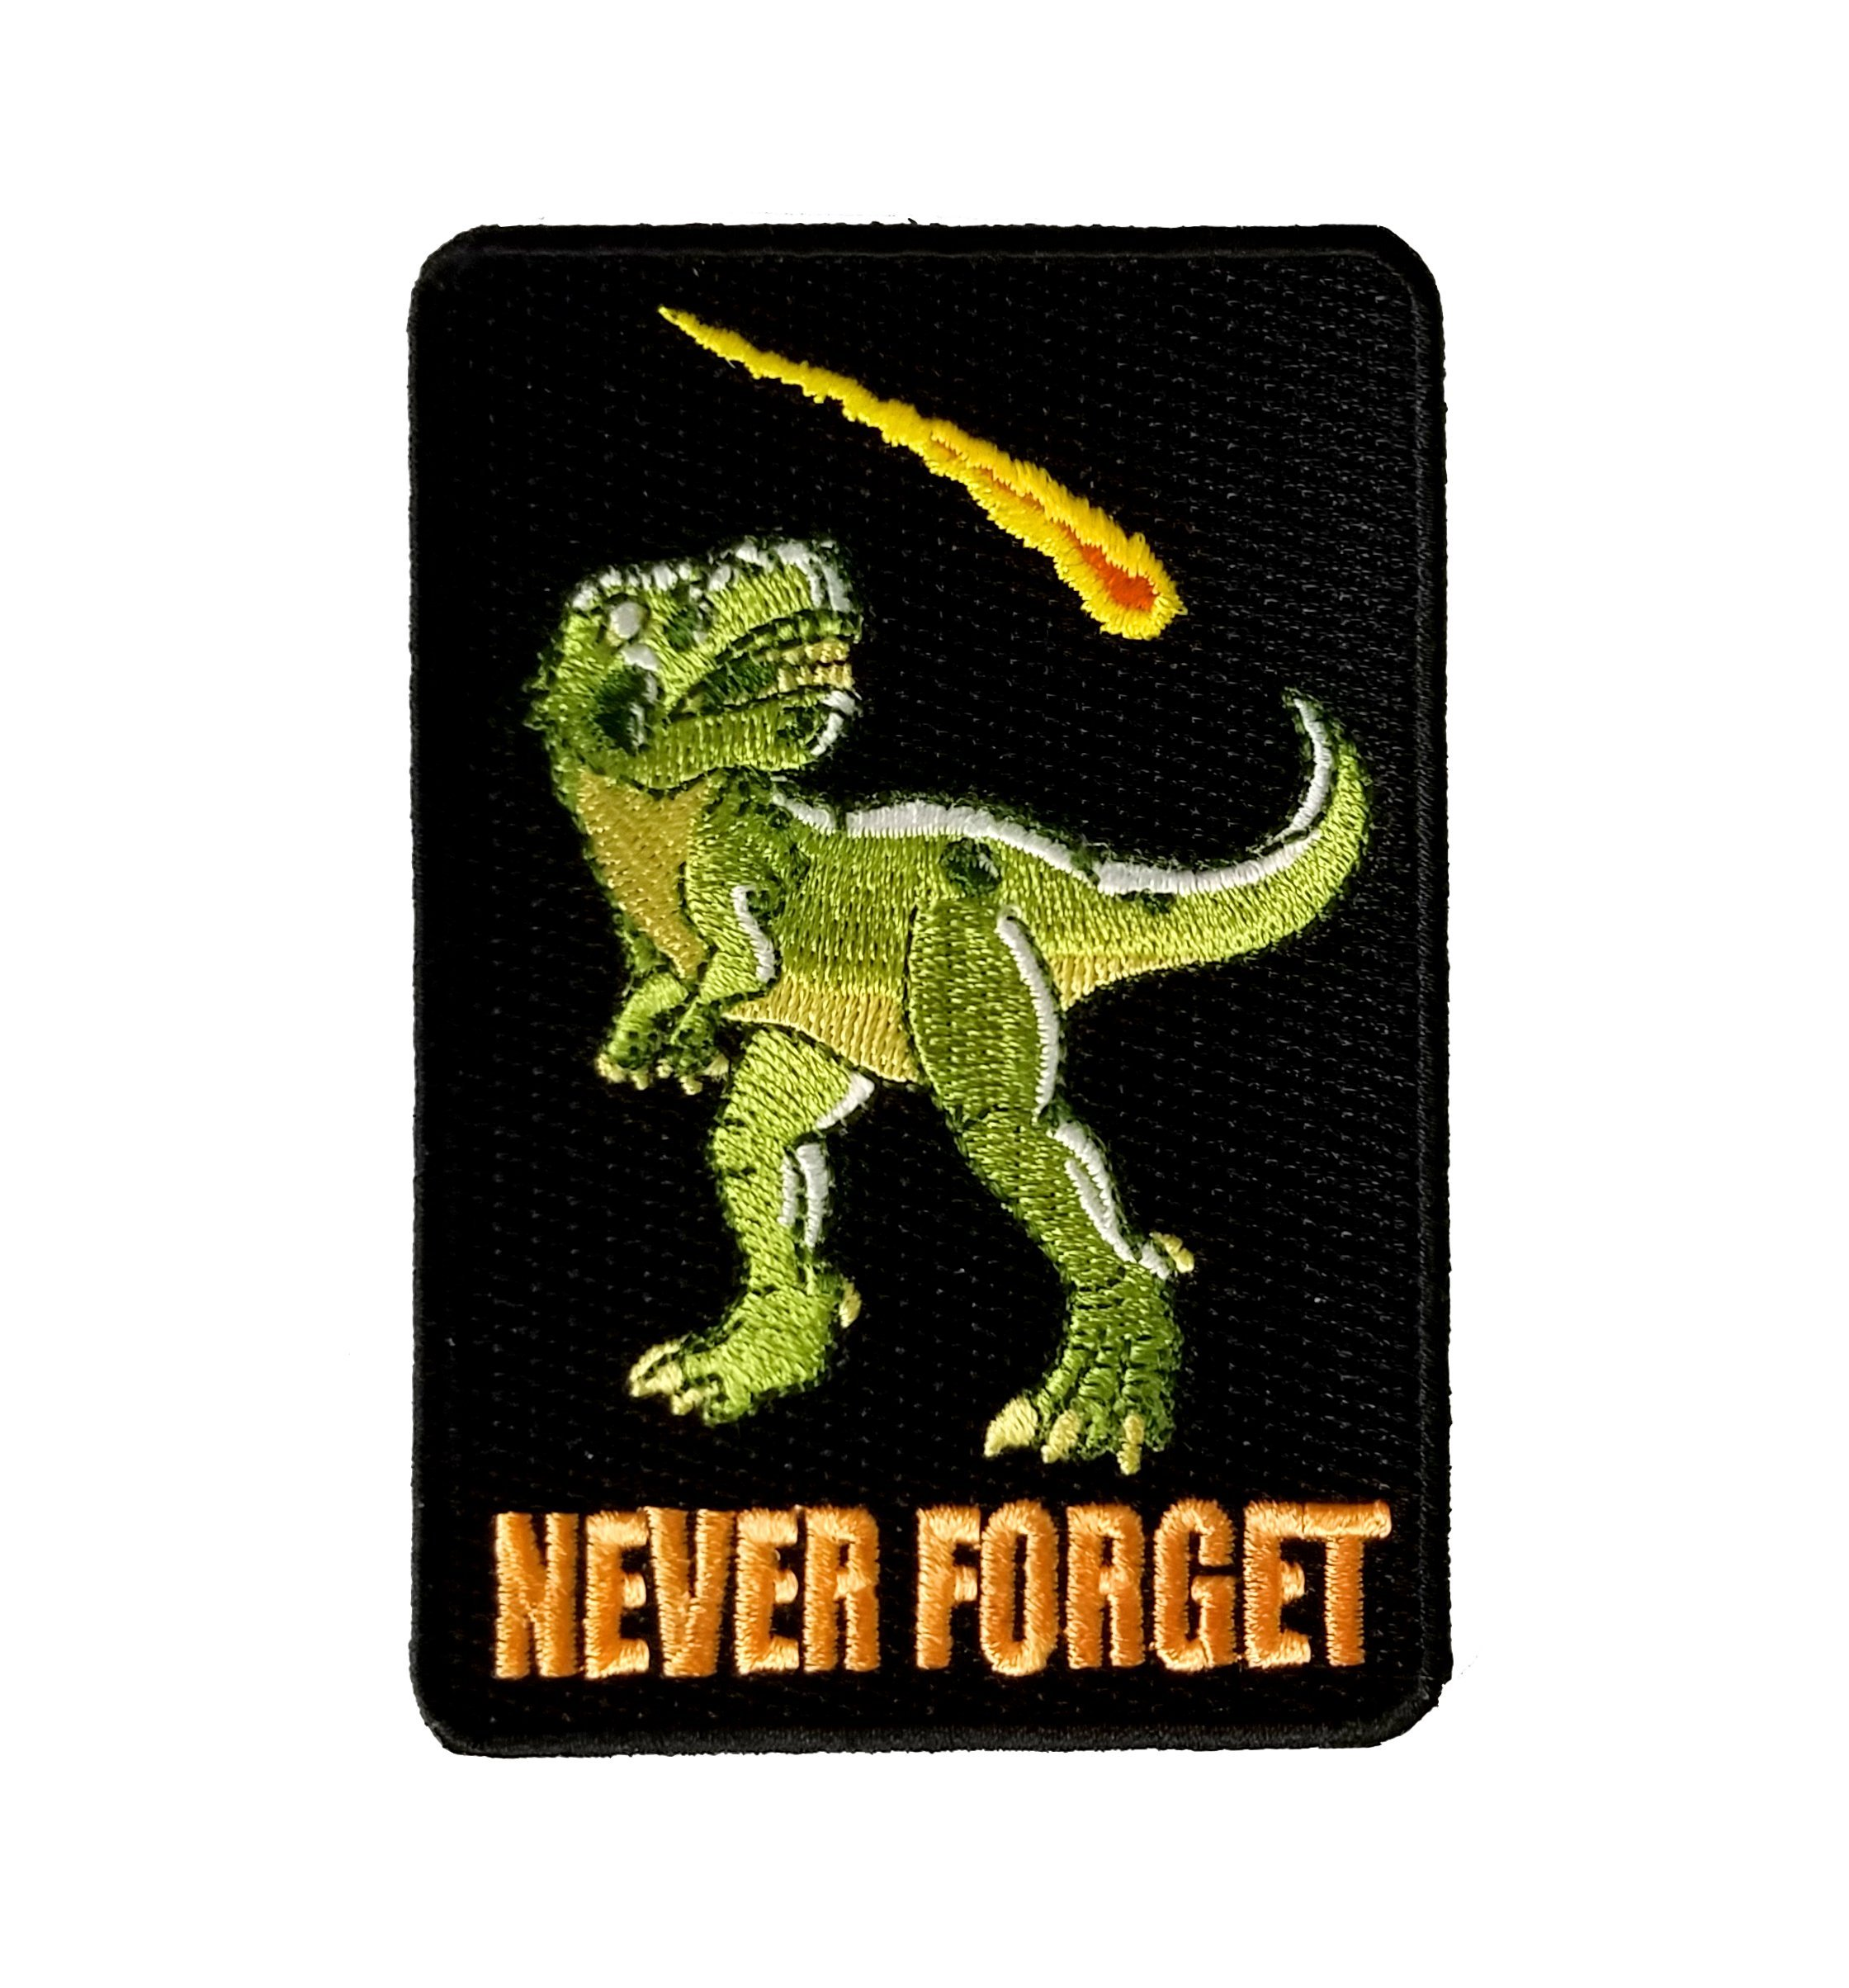 Check Out Dinosaur Never Forget PatchProducts On Amazon!